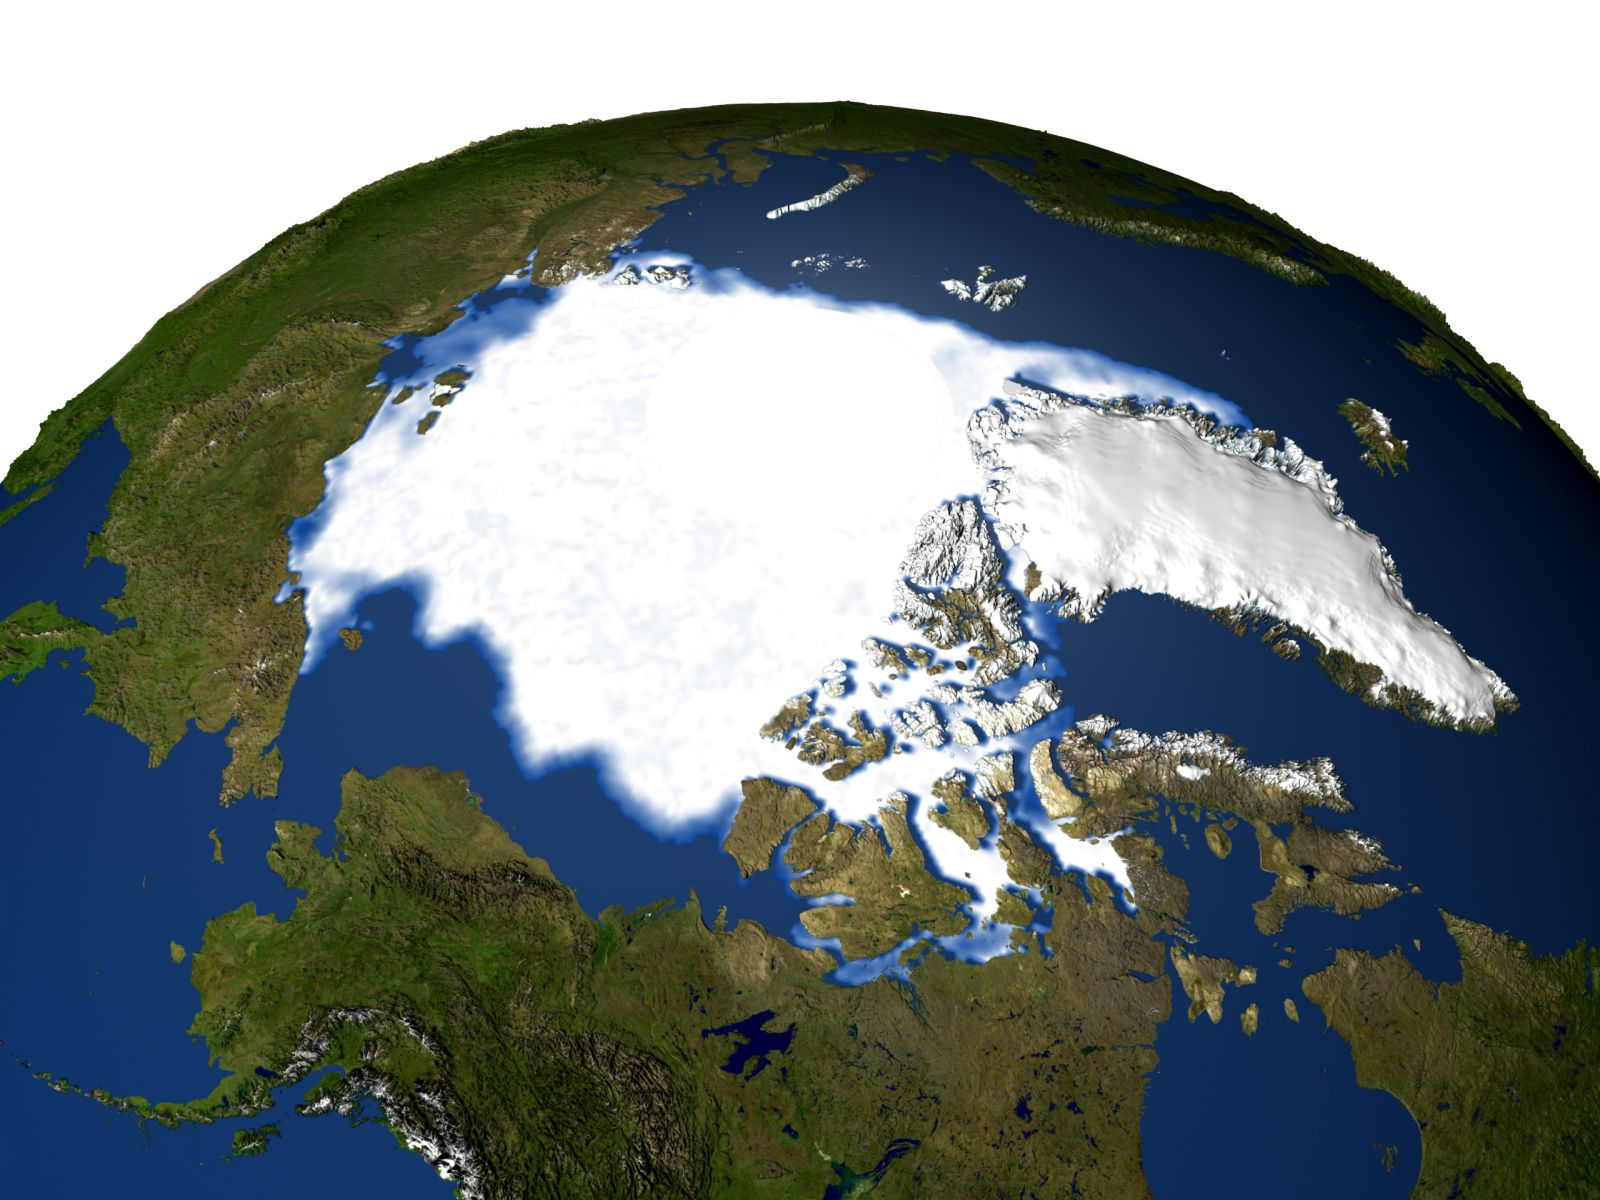 Data image showing Arctic sea ice extent in 1979